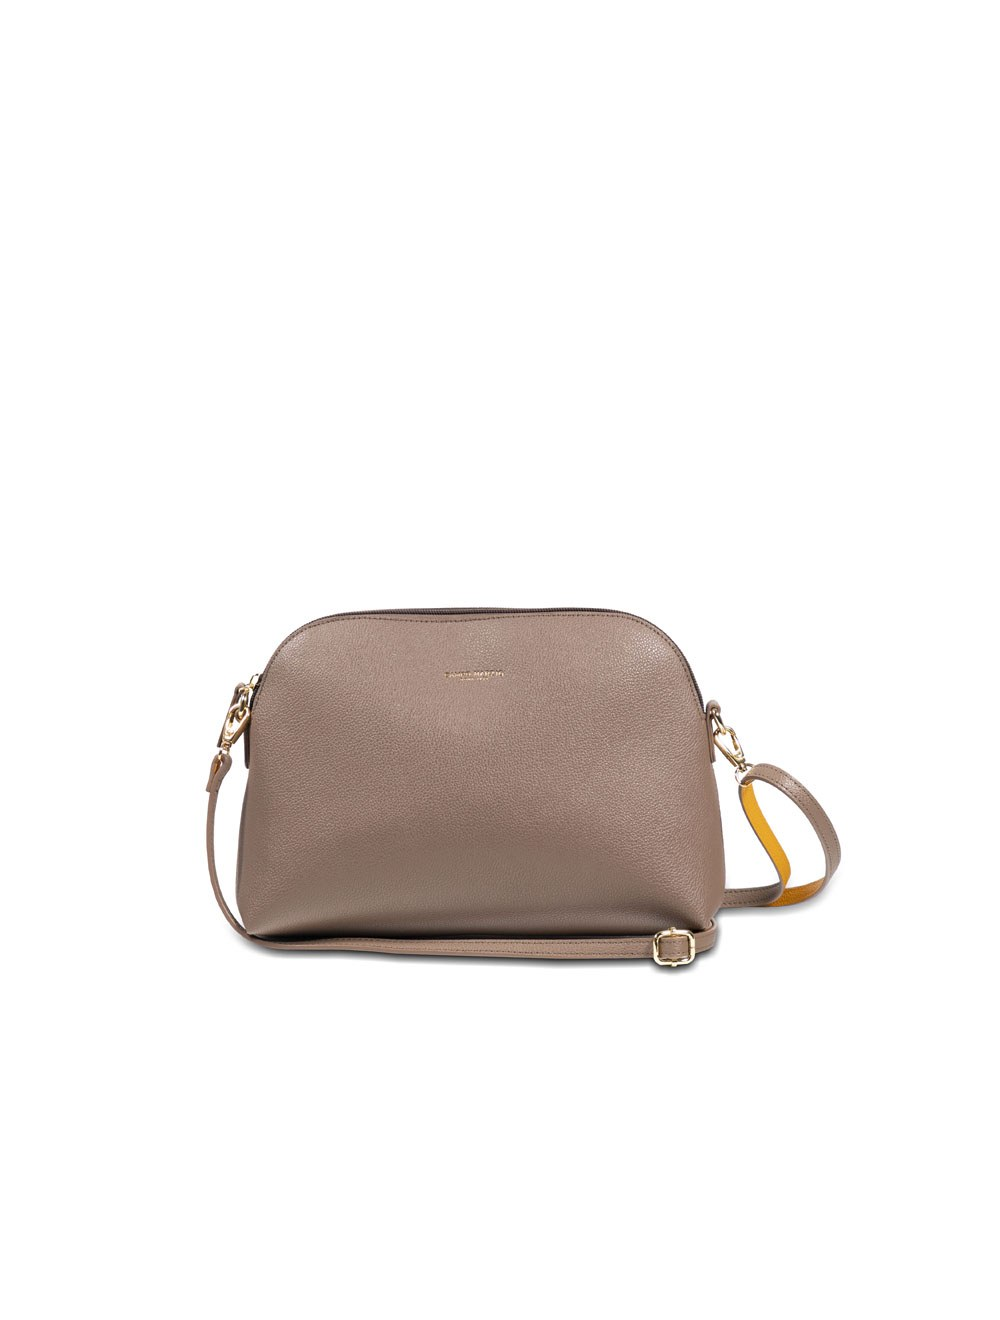 Bag With Crossbody Strap Mini - Taupe